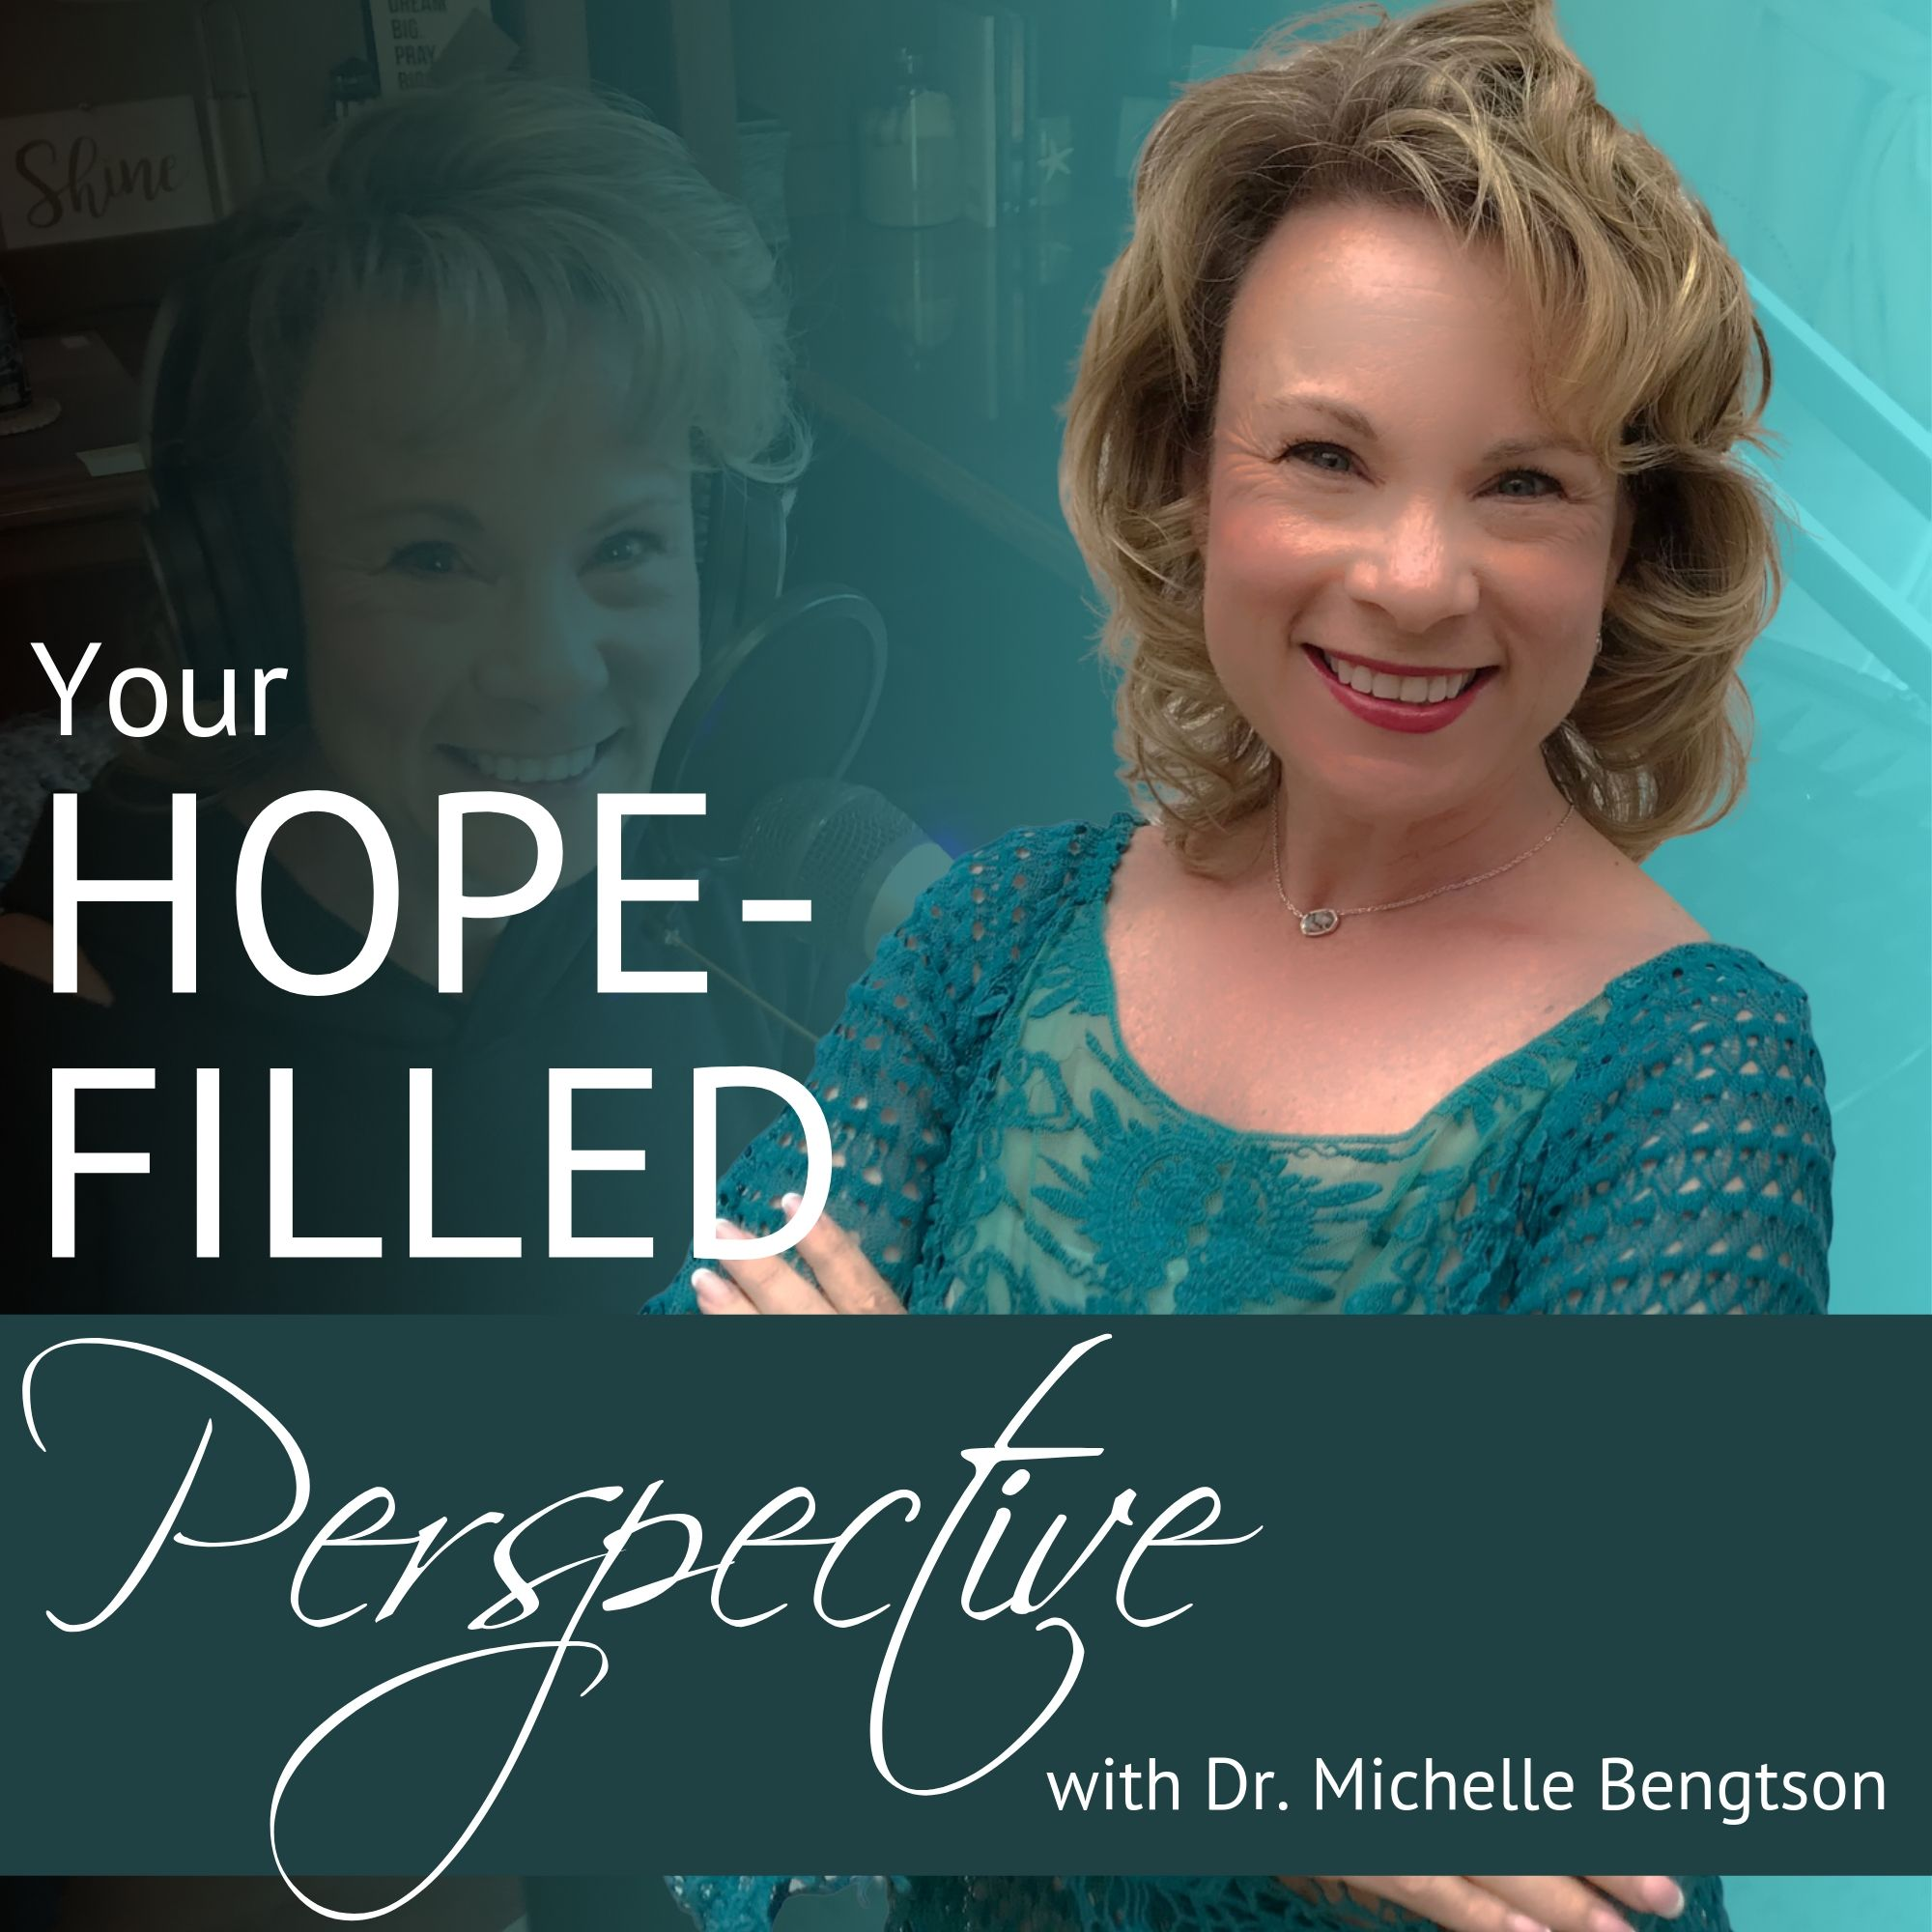 Your Hope-Filled Perspective with Dr. Michelle Bengtson podcast show art